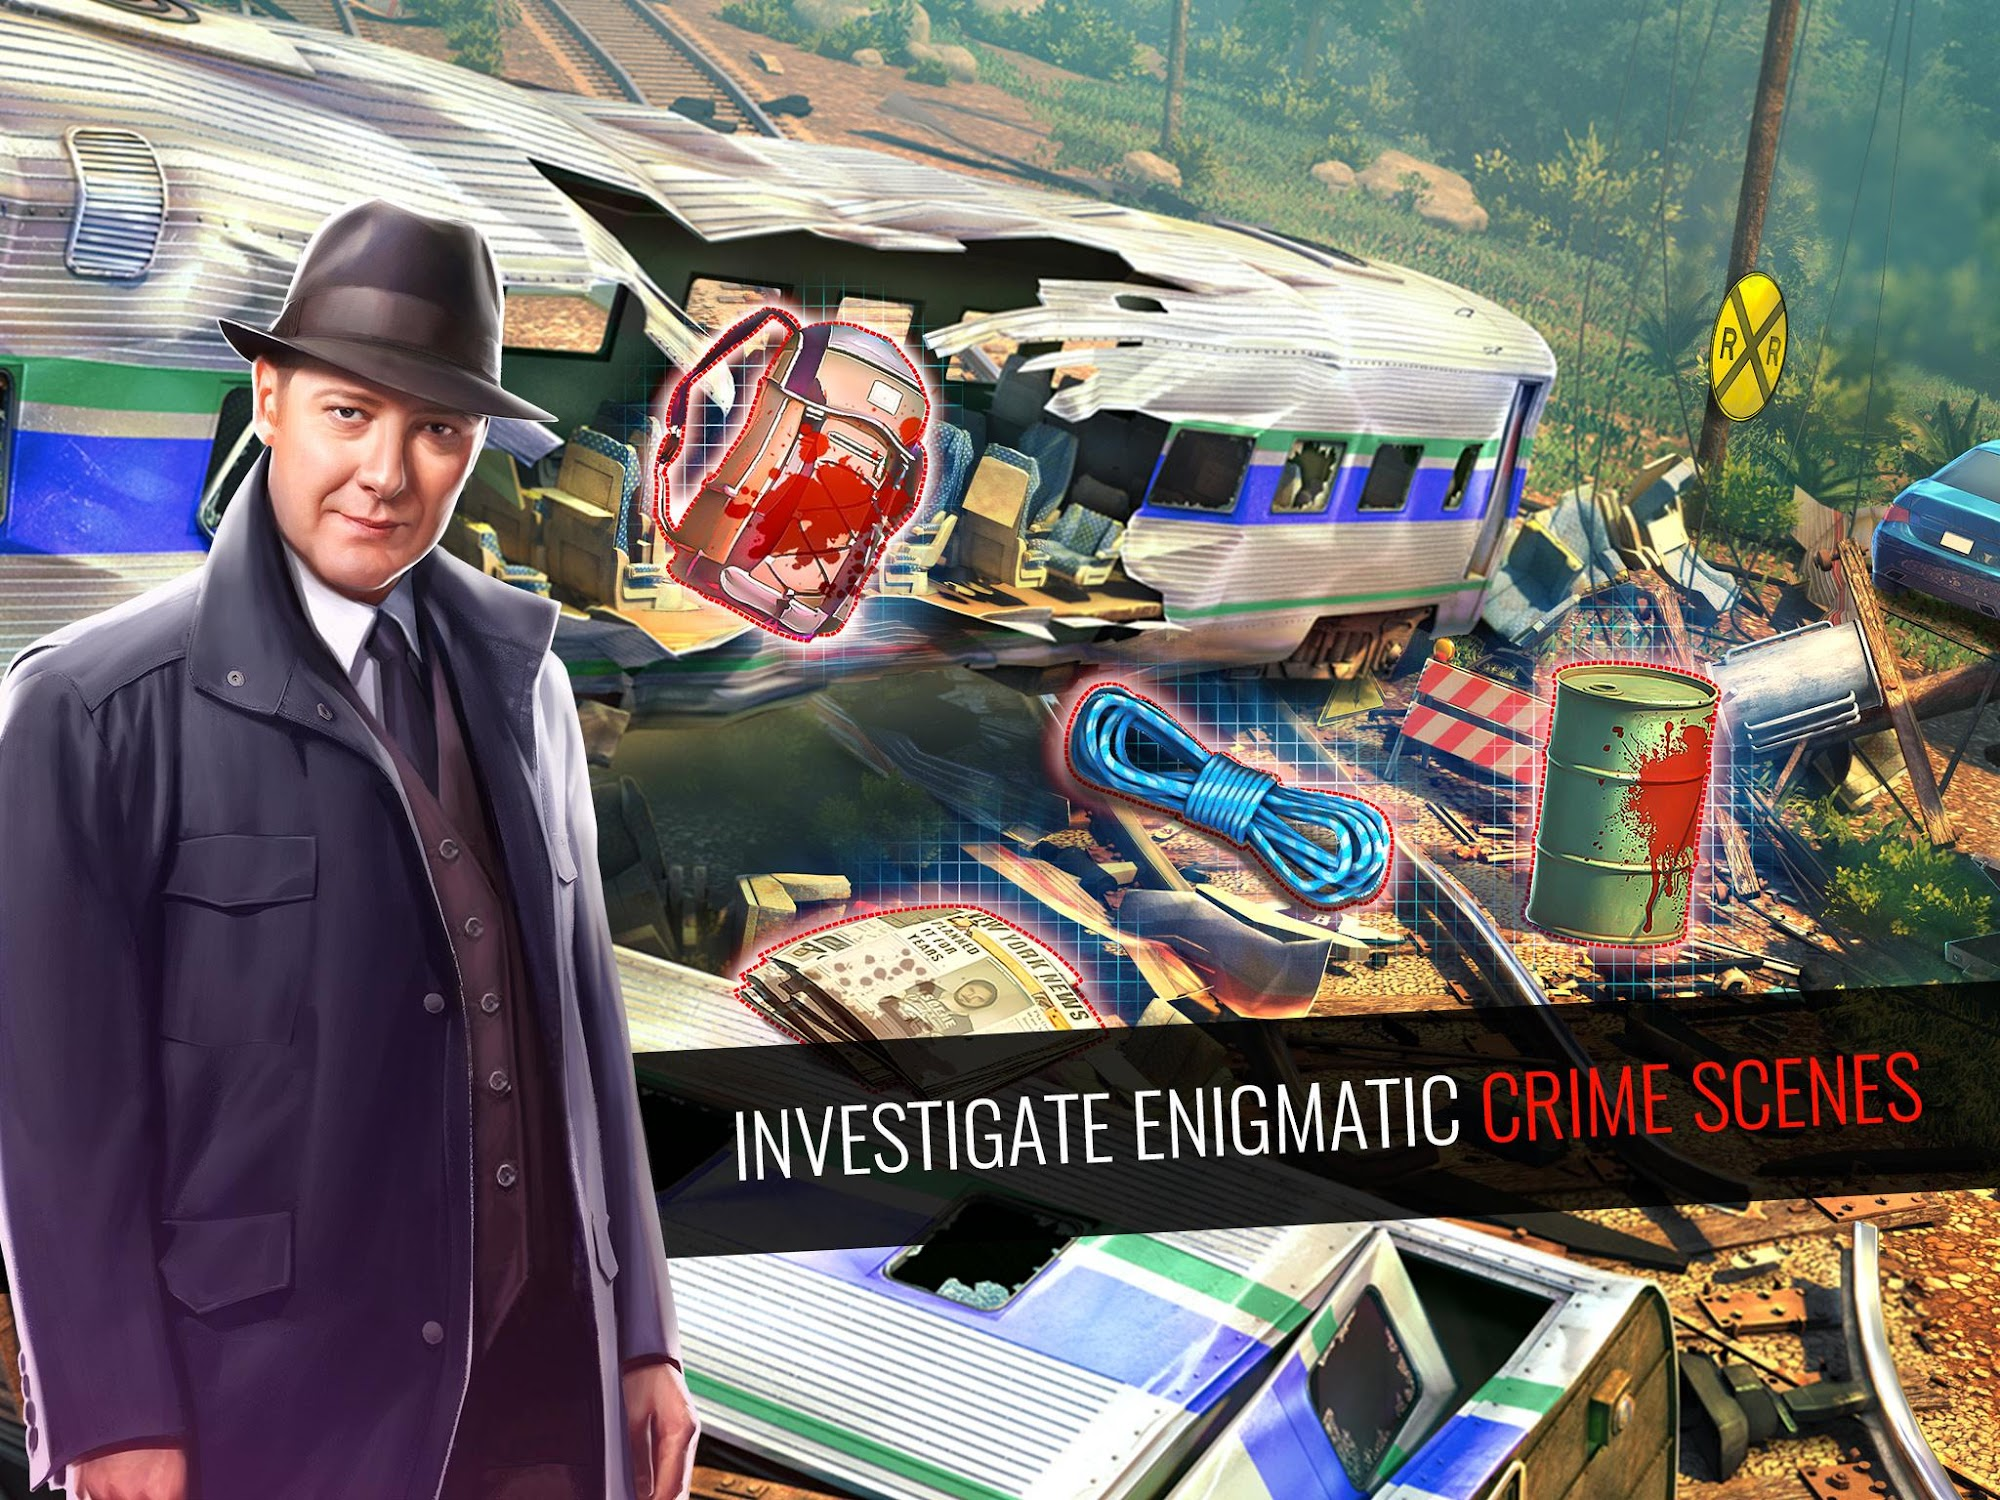 The Blacklist: Conspiracy image #1